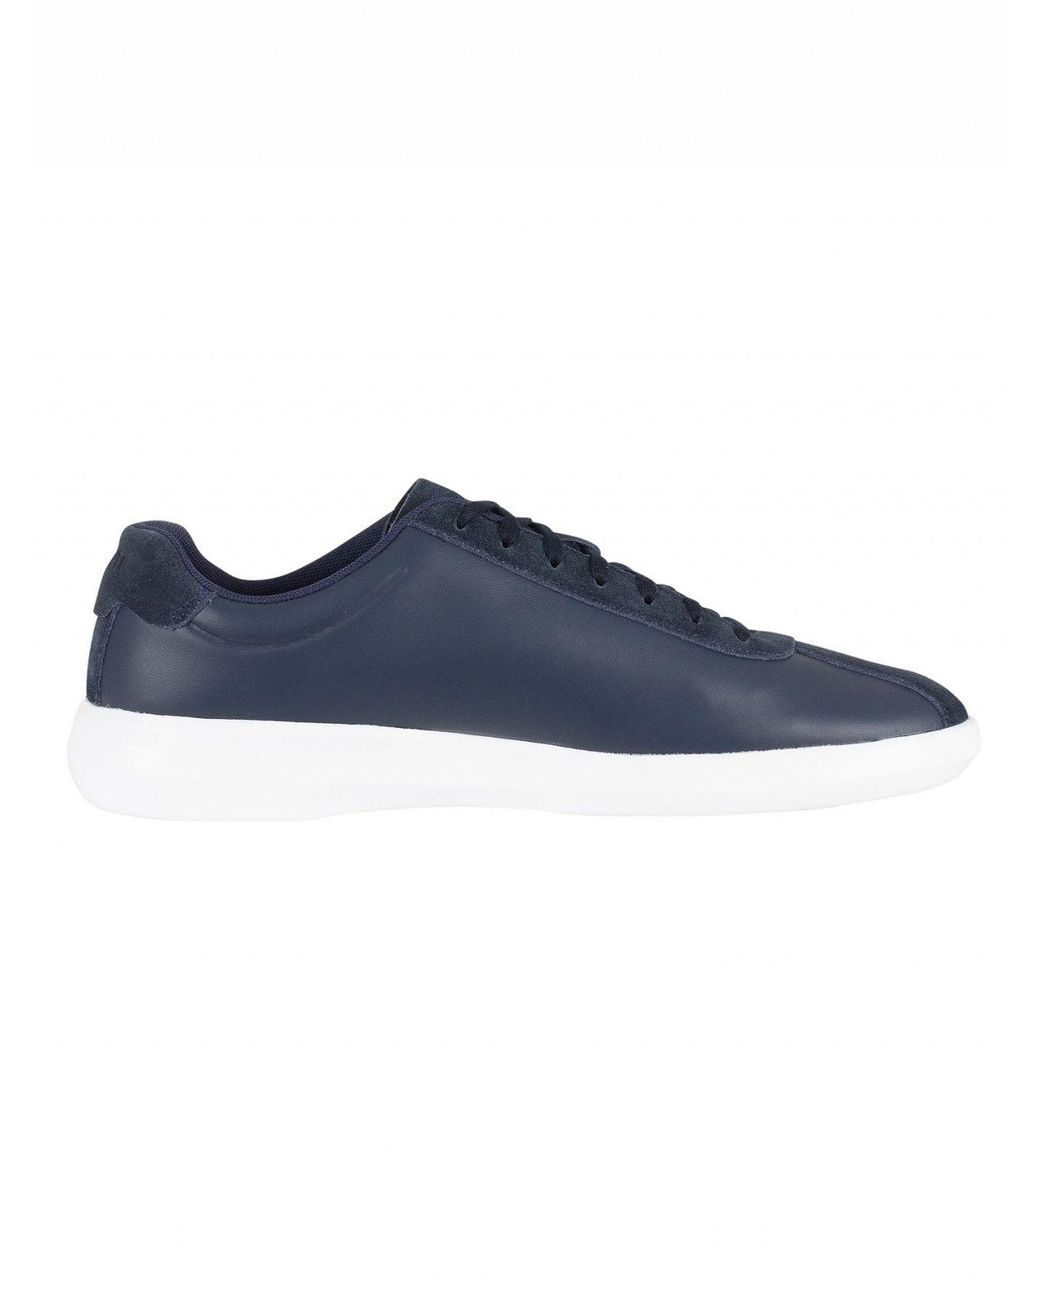 b97997a58690 Lyst - Lacoste Navy white Avance 318 2 Spm Trainers in Blue for Men